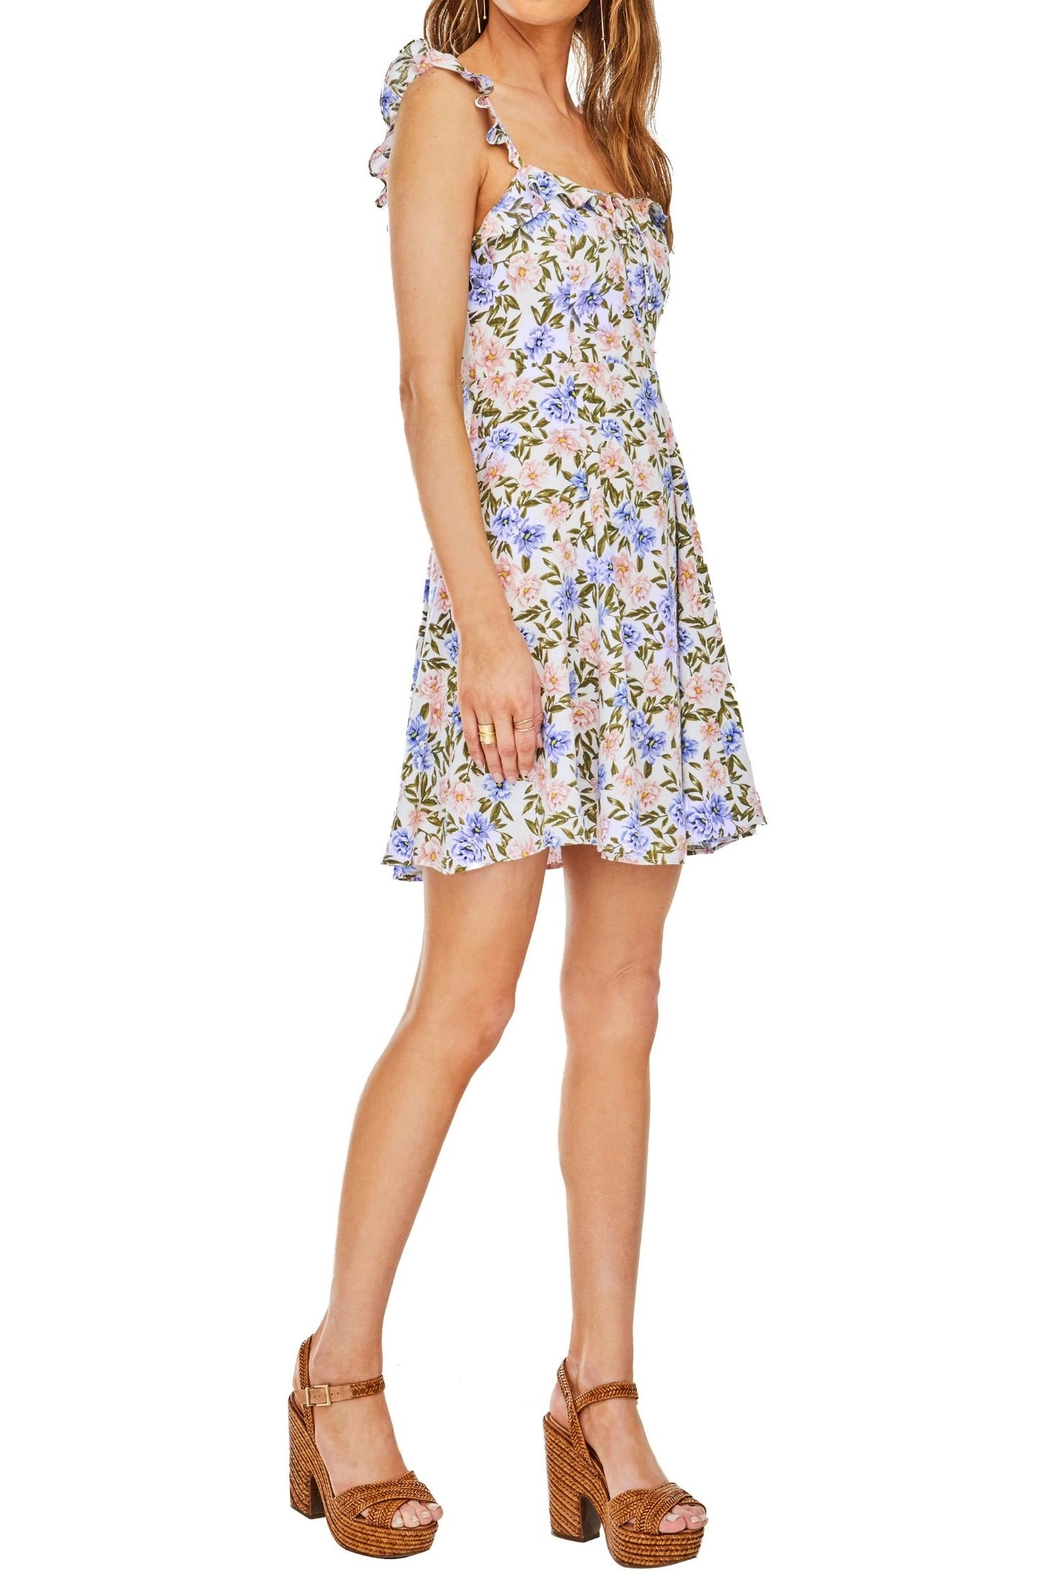 ASTR Floral Hannah Dress - Front Full Image